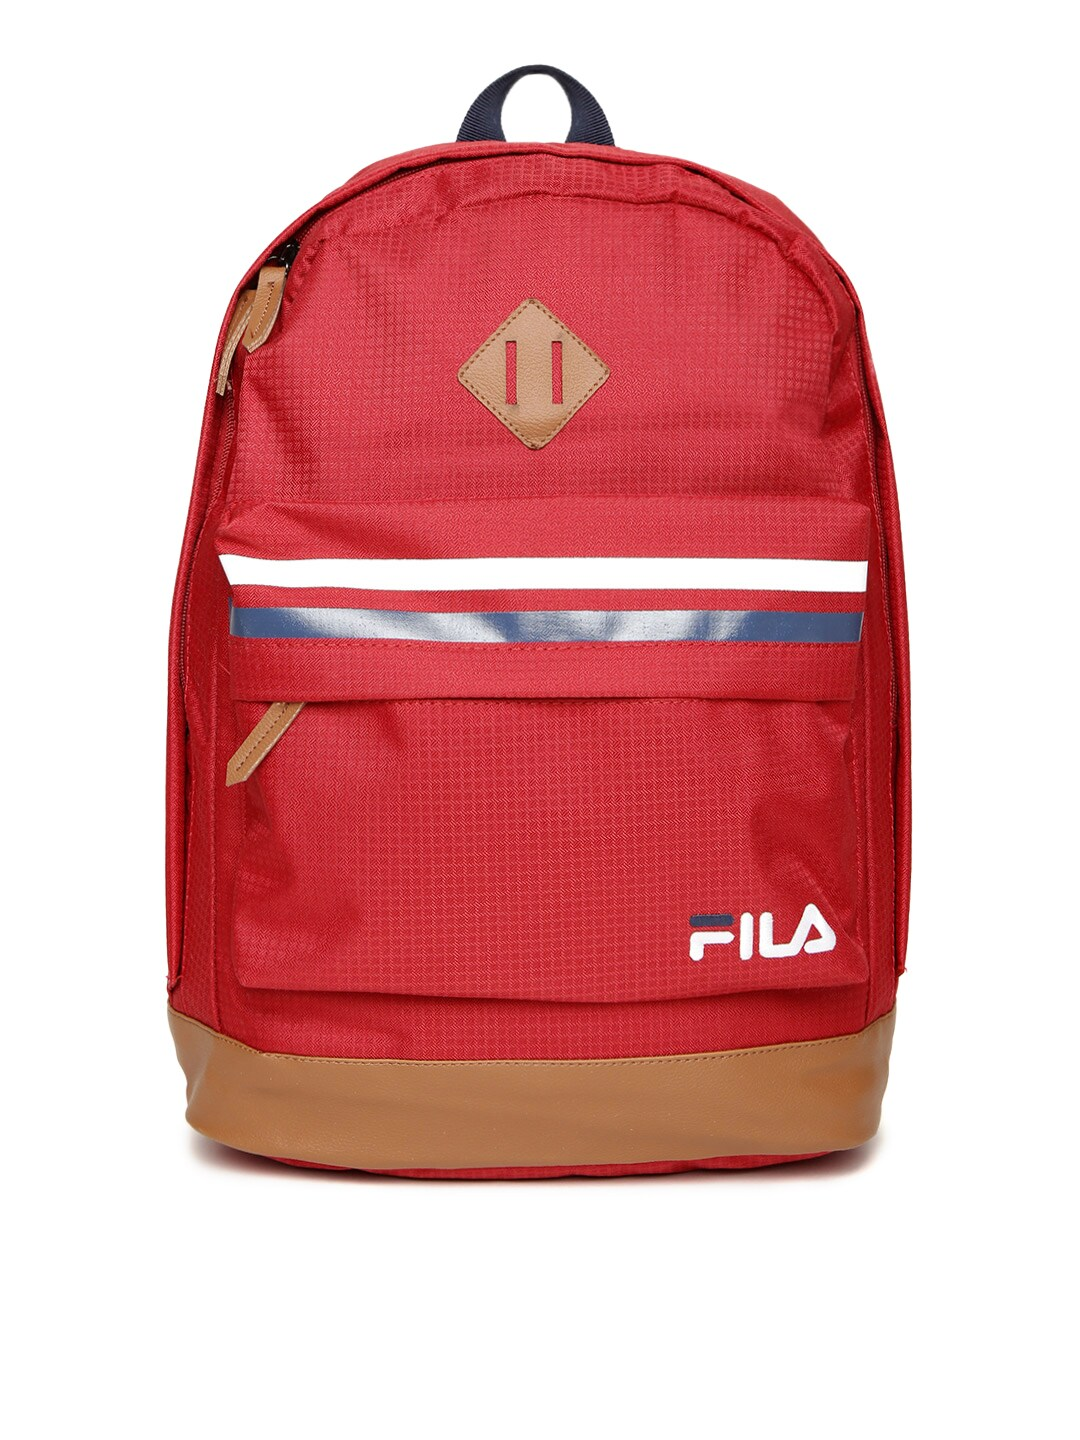 5ee0112a10 Fila Bags - Buy Fila Bags For Men Online in India at Myntra